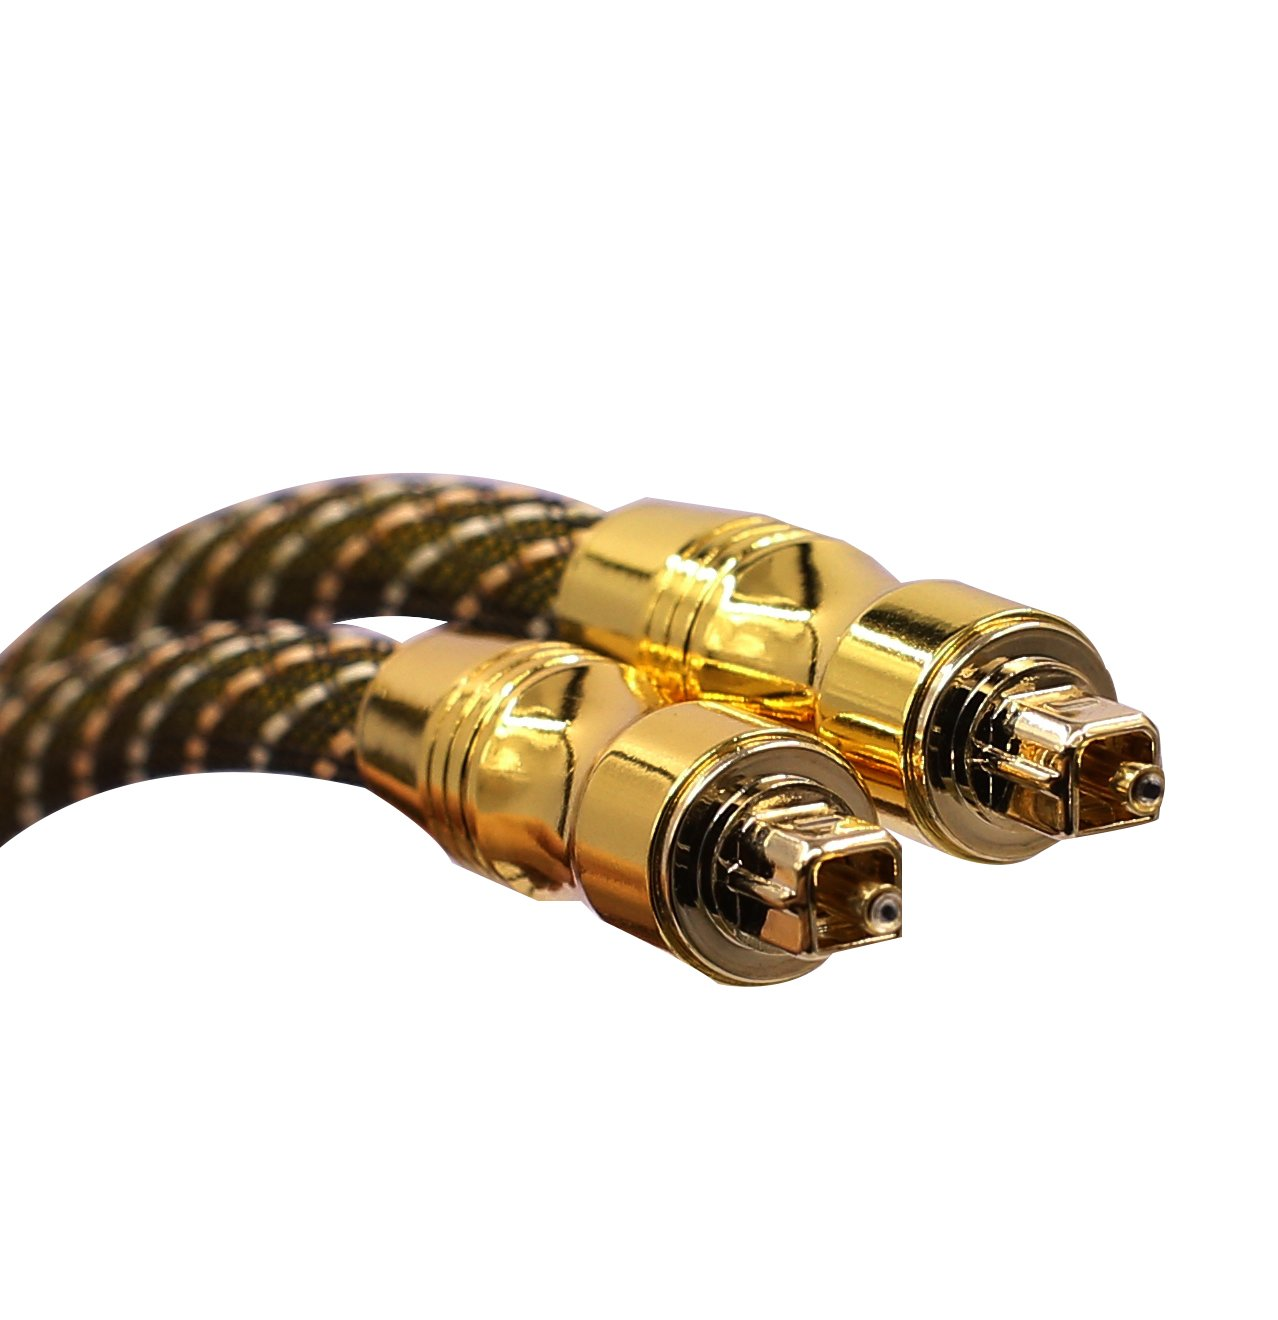 SiGuTie Optical Audio Cable 10FT,Home Theater Gold Plated Optical Cables Male to Male Braided Cord for DVD, Sound Bar, HDTV, PS3, Xbox by SiGuTie